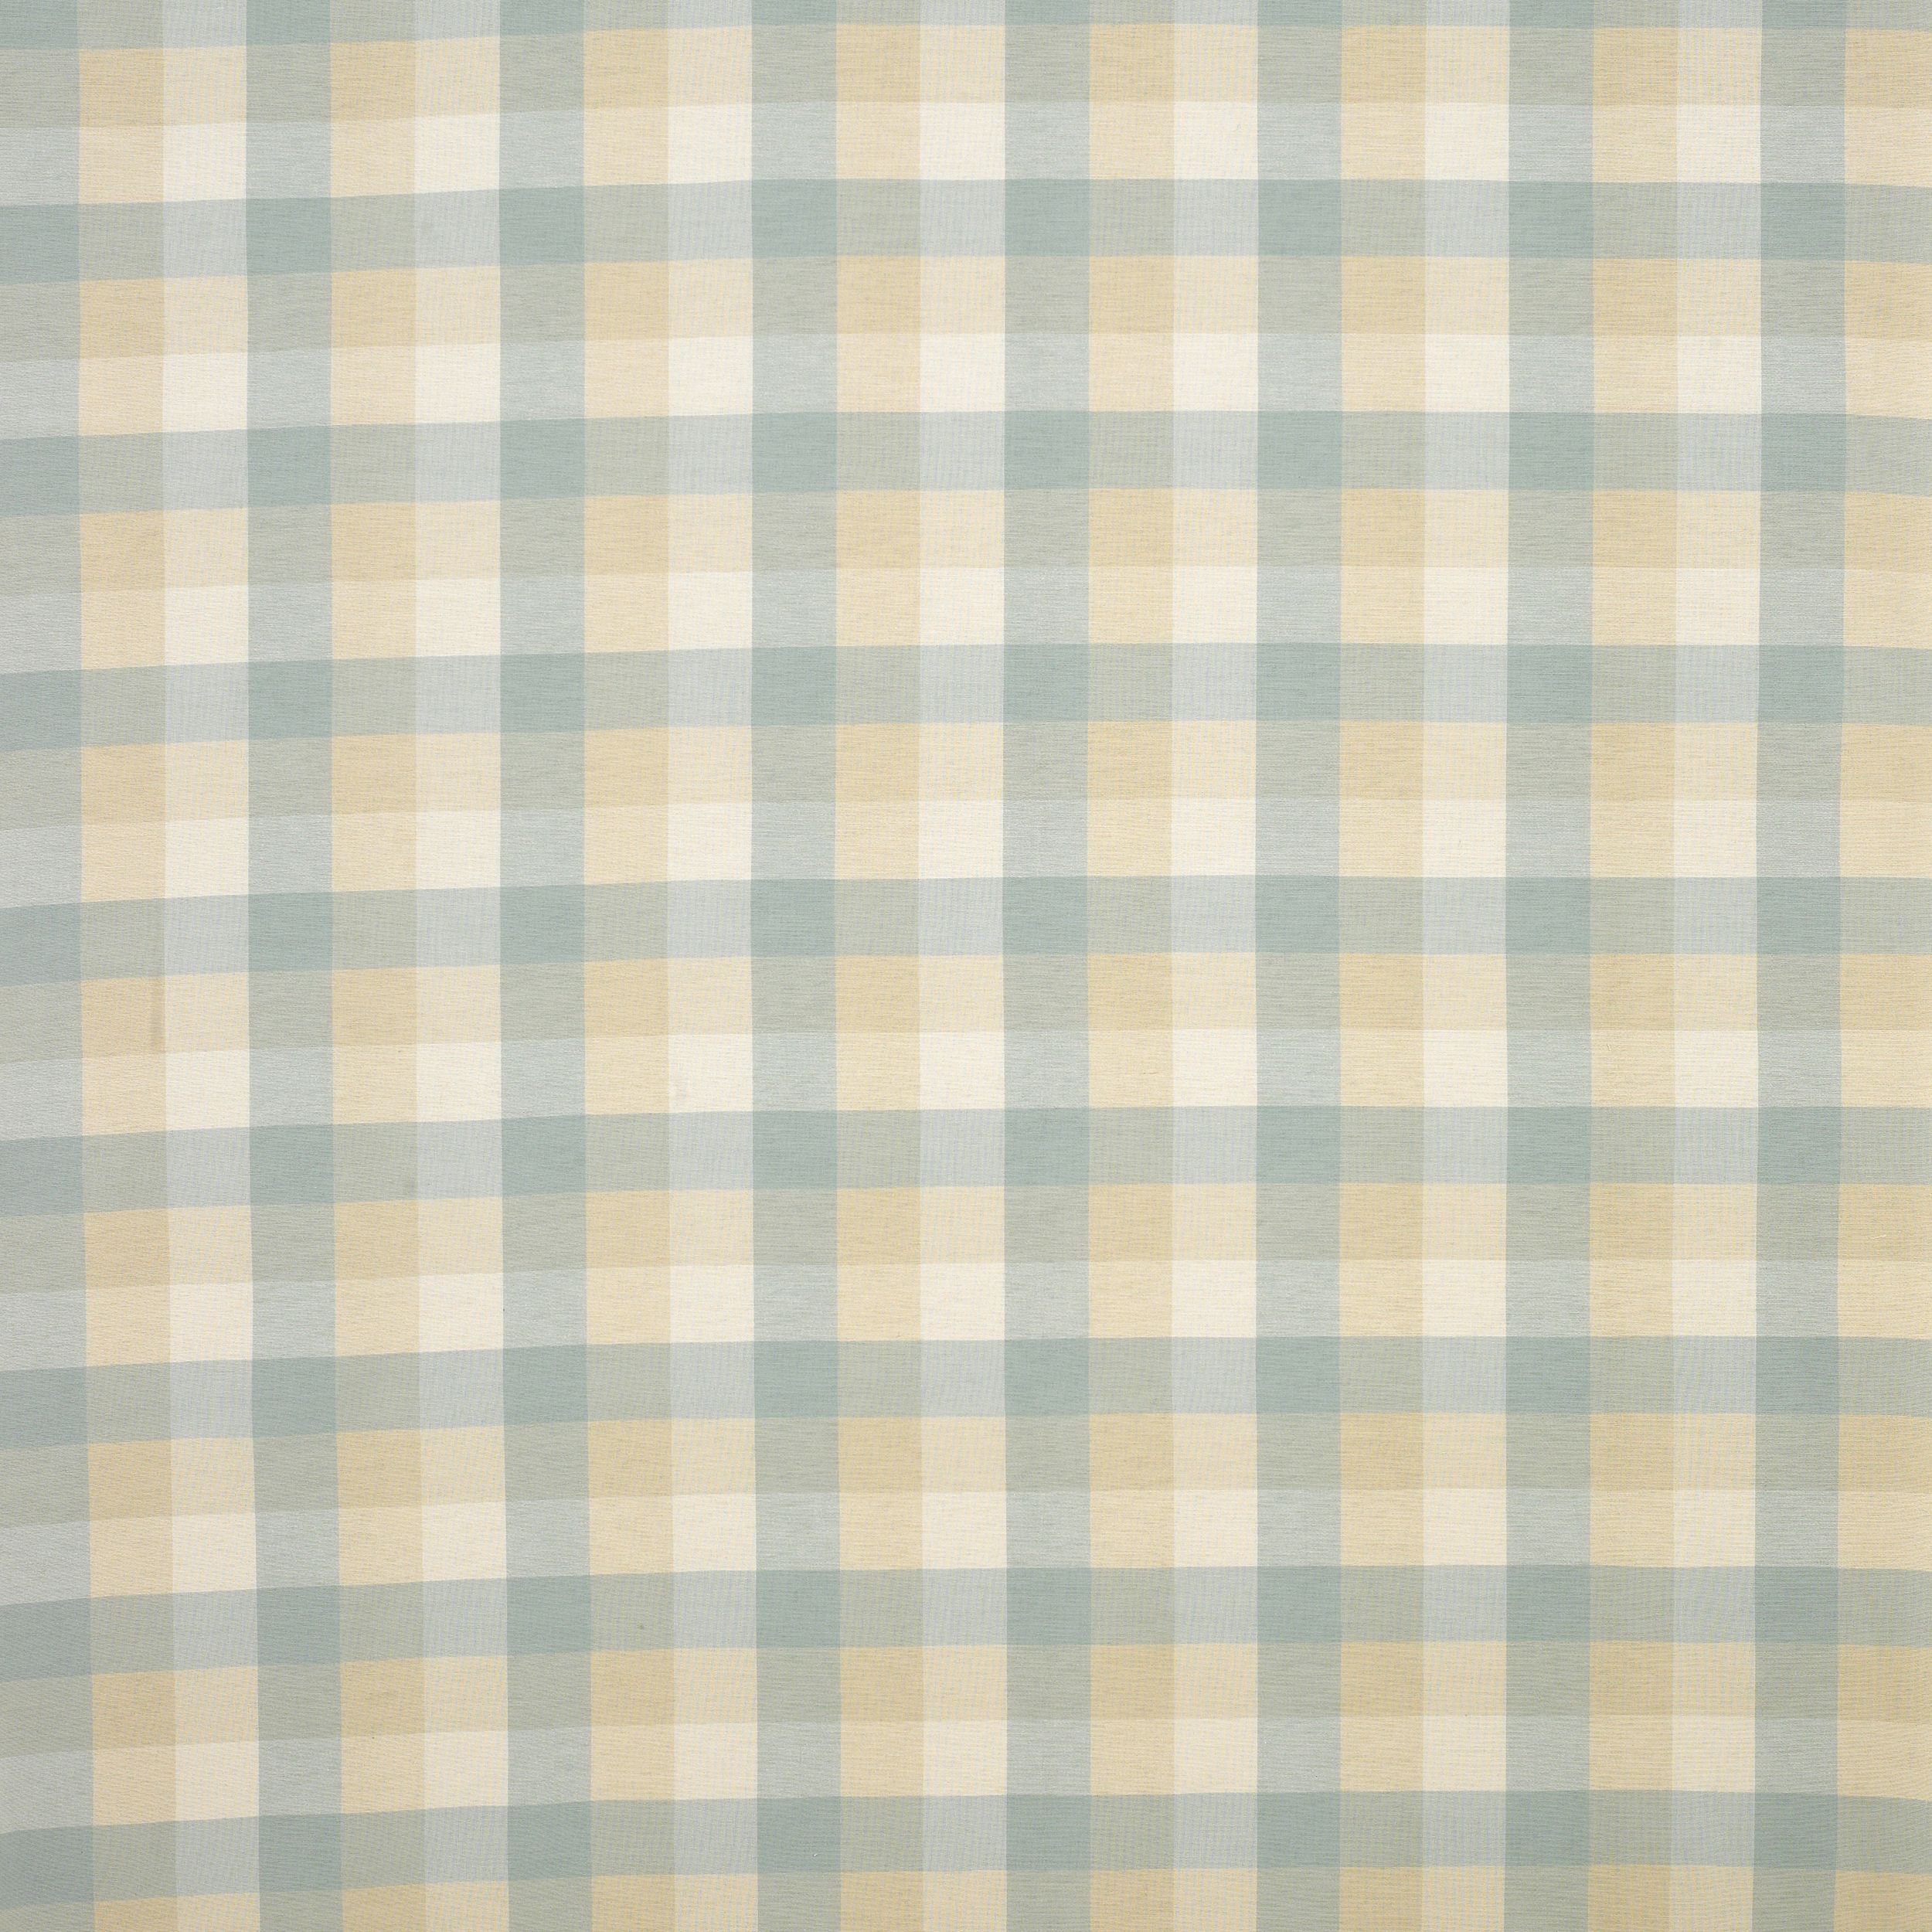 Laura Ashley Mitford Check Cotton Fabric Duck Egg